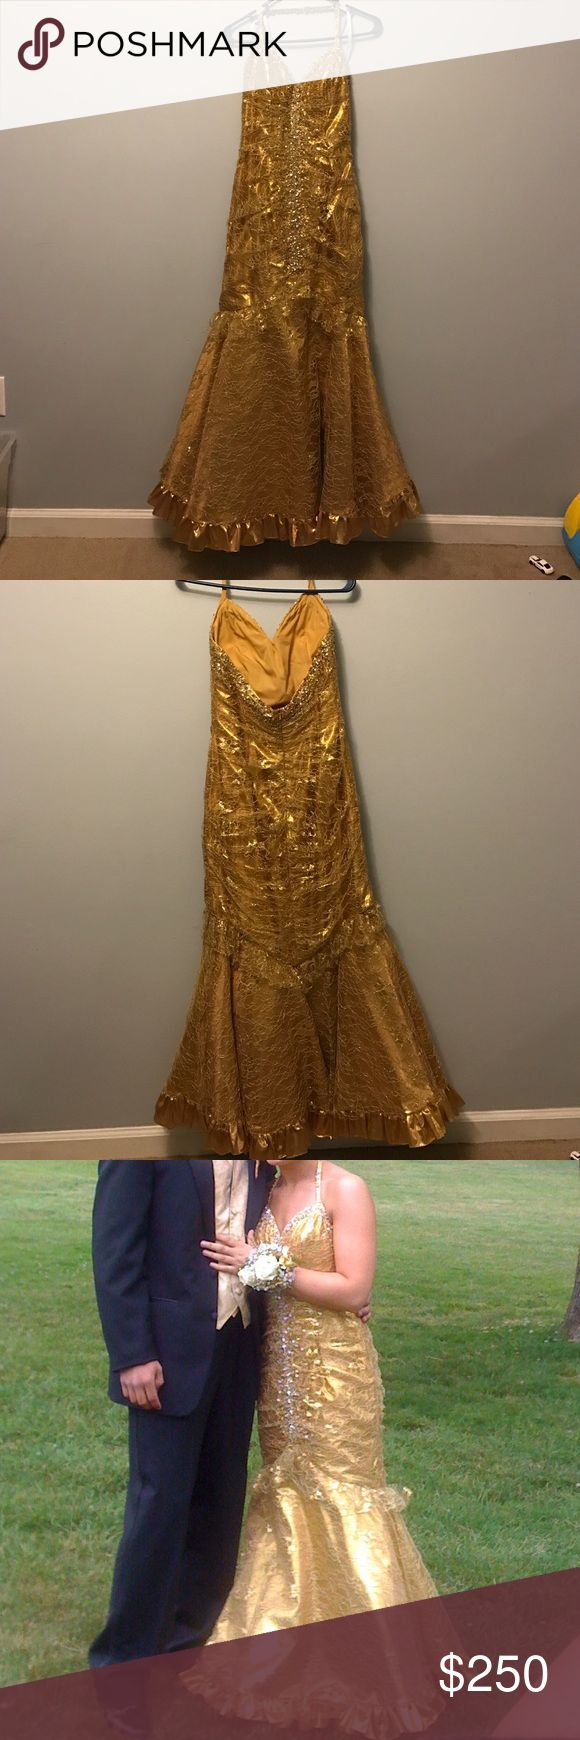 Gold Sequined Prom Dress Gold prom dress. Worn once. Great Condition Dresses Prom